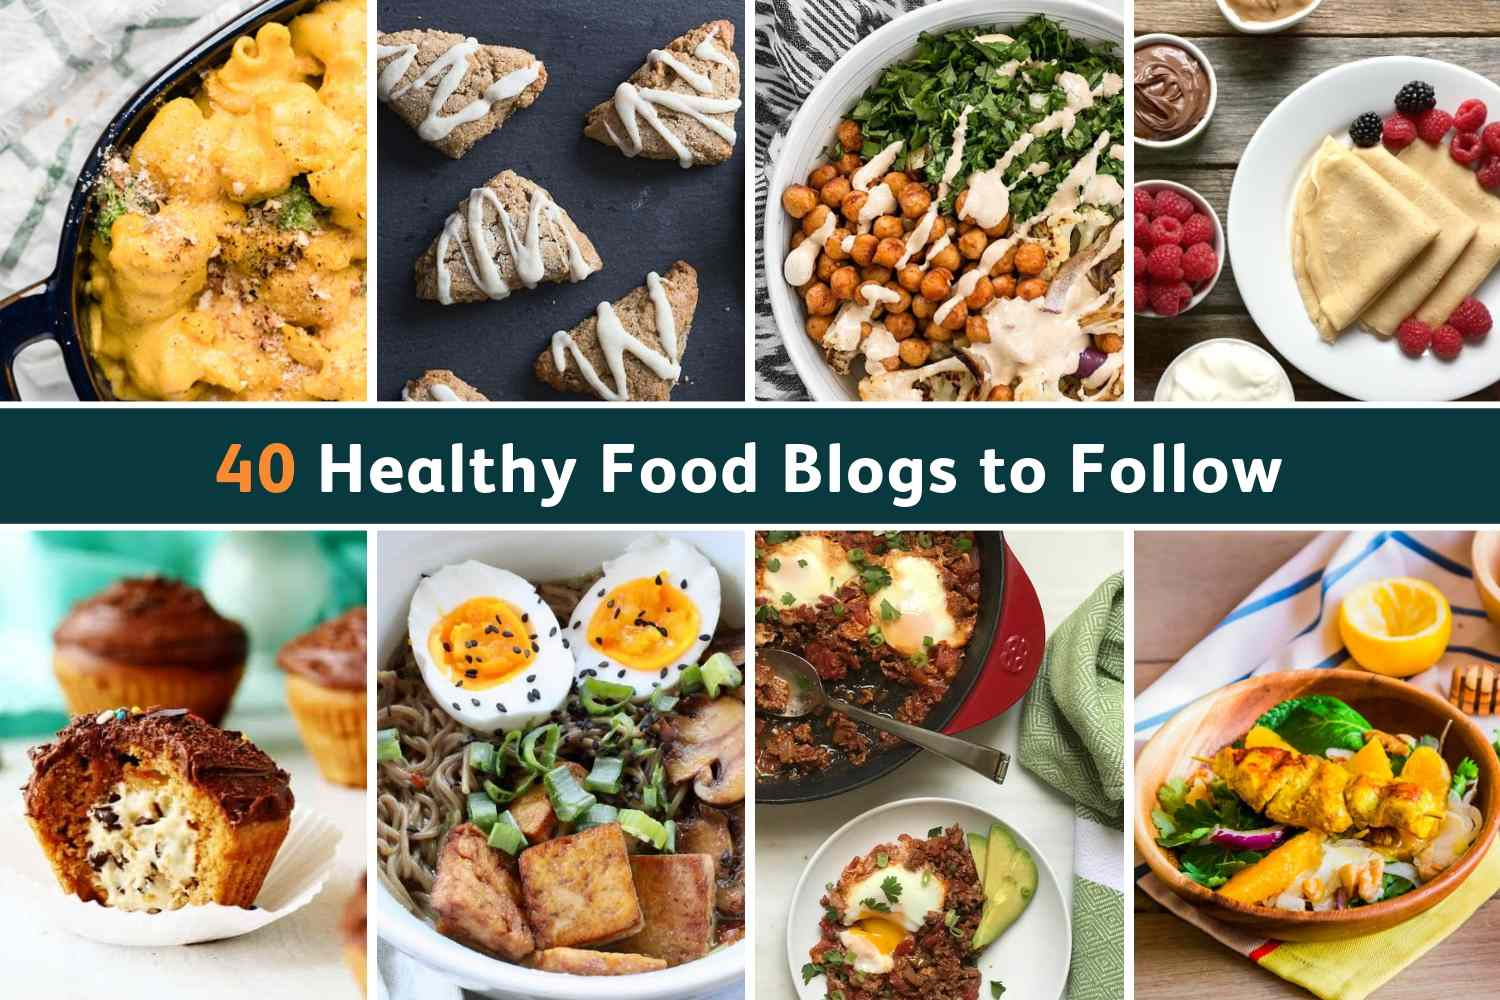 The 40 Best Healthy Food Blogs to Follow in 2019